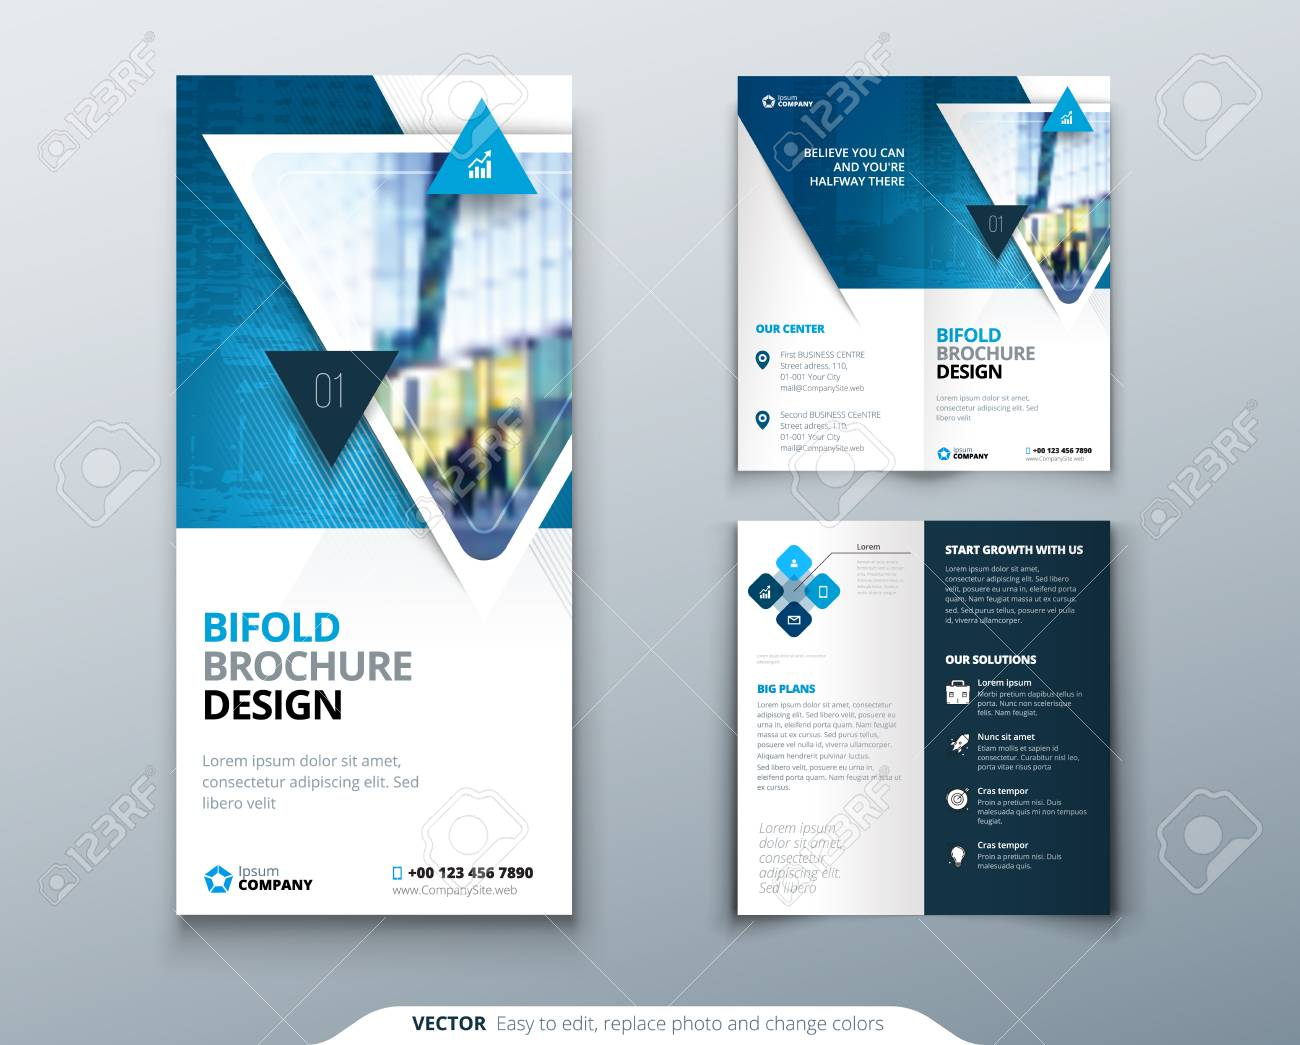 bi fold brochure design blue template for bi fold flyer layout